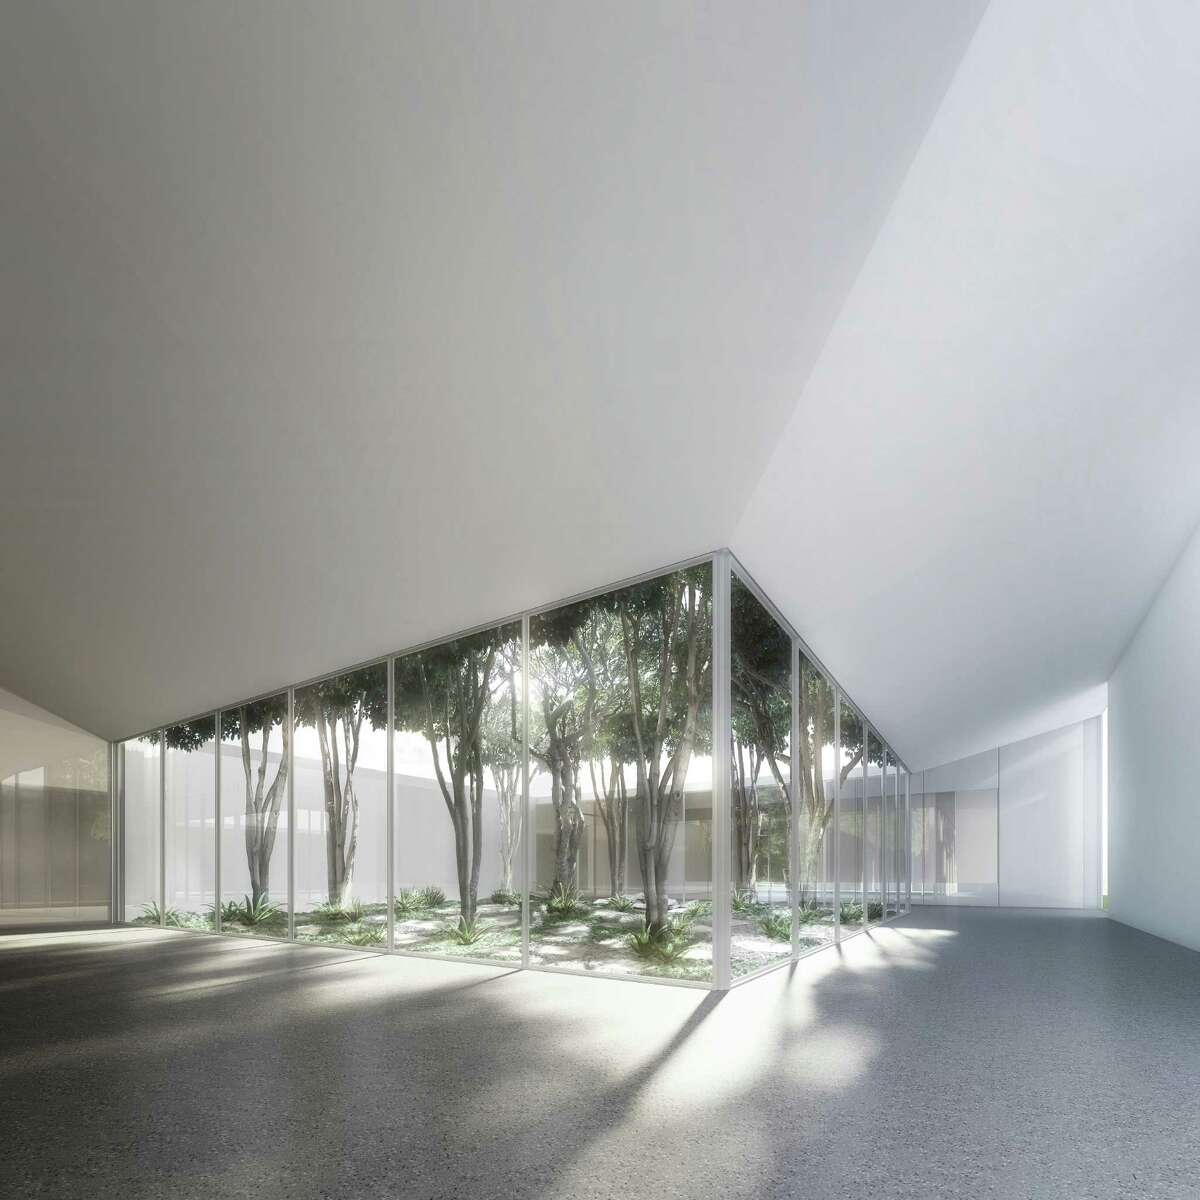 The Scholar Courtyard of the Menil Drawing Institute, designed by the Los Angeles architectural firm Johnston Marklee.